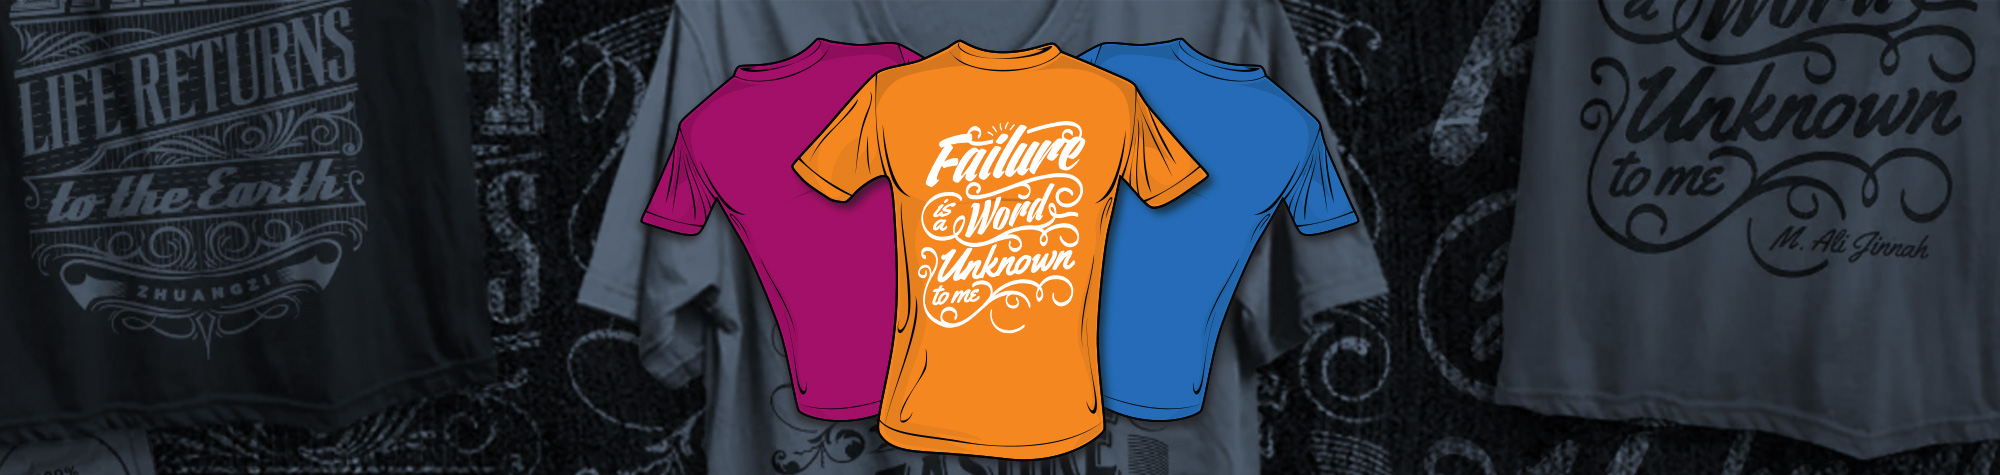 Graphic T-Shirt Design with Adobe Illustrator and Photoshop for DTG Printing